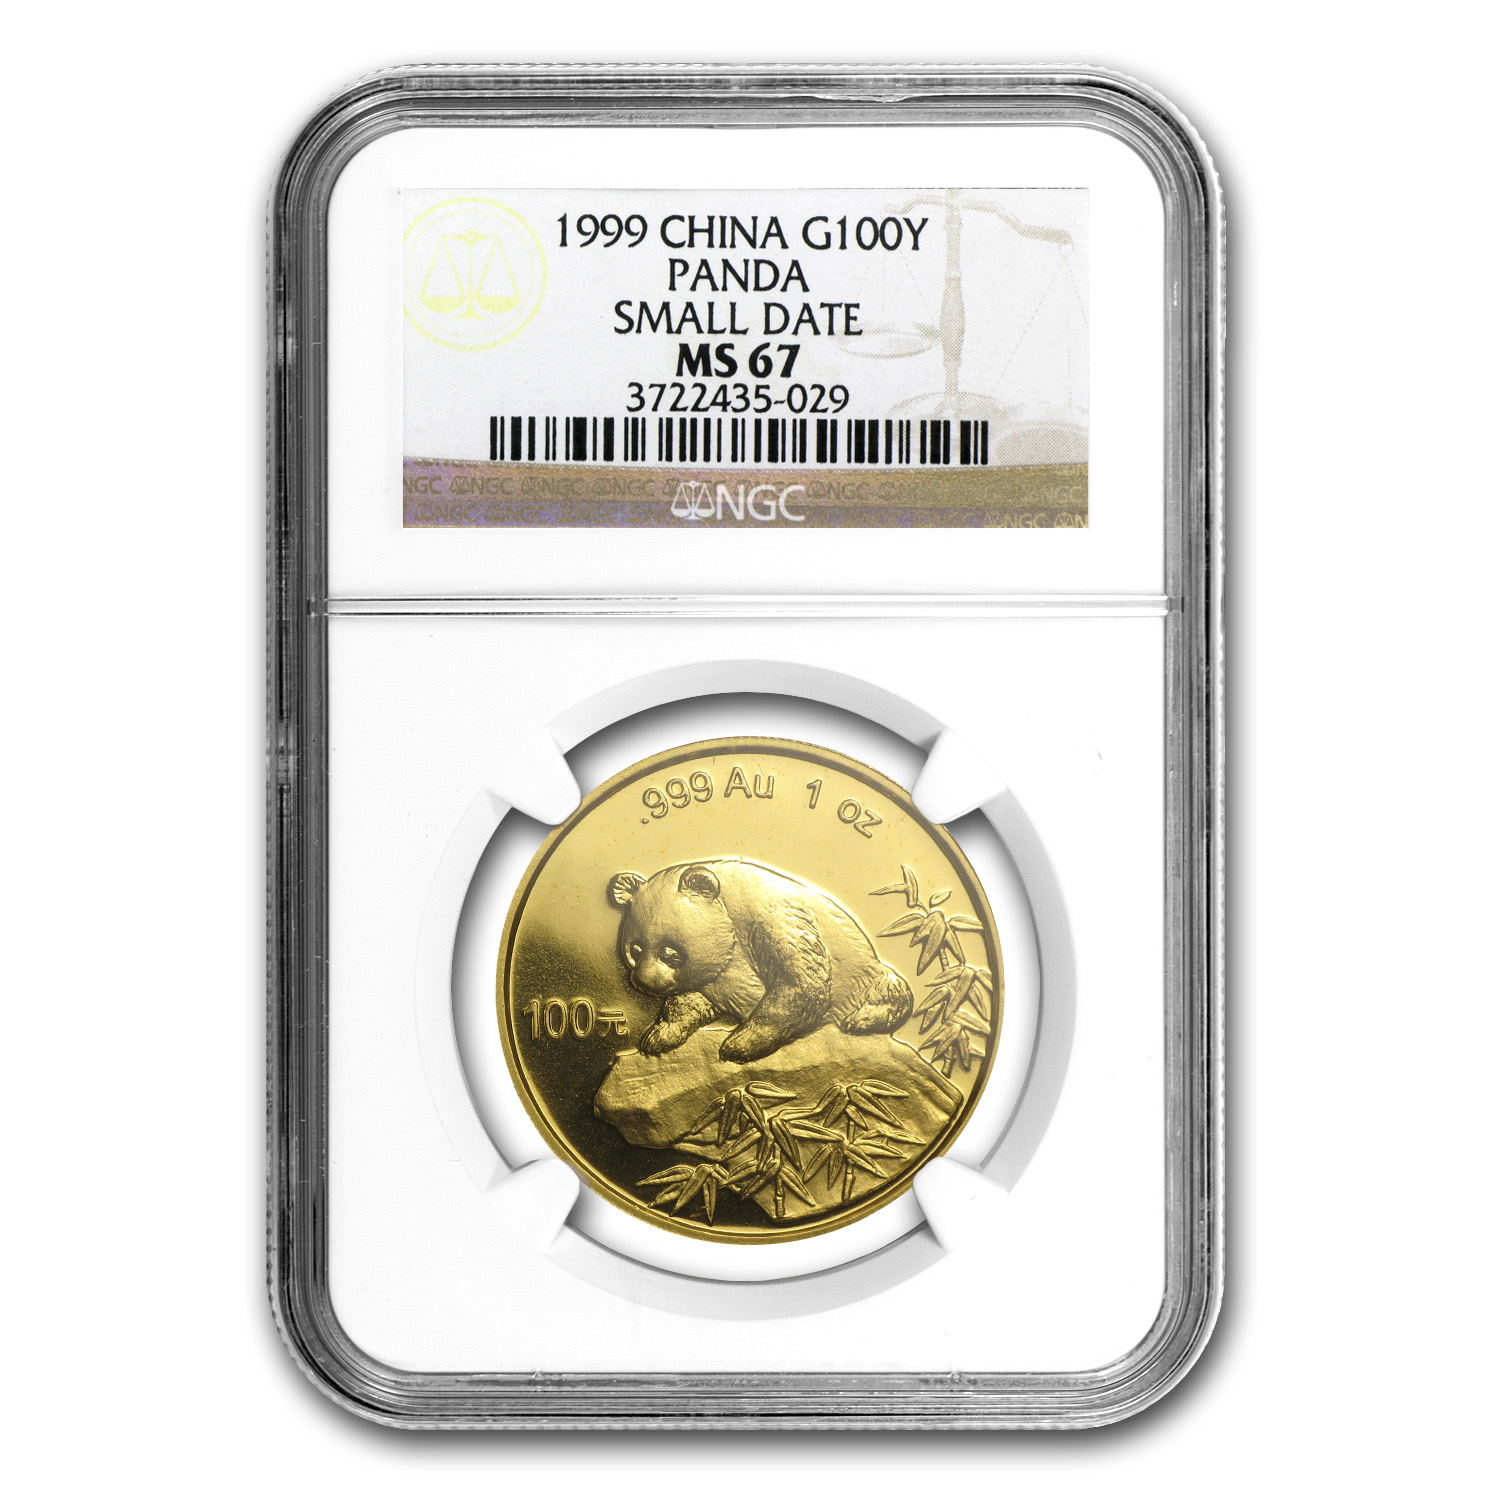 1999 1 oz Gold Chinese Panda MS-67 NGC - Small Date